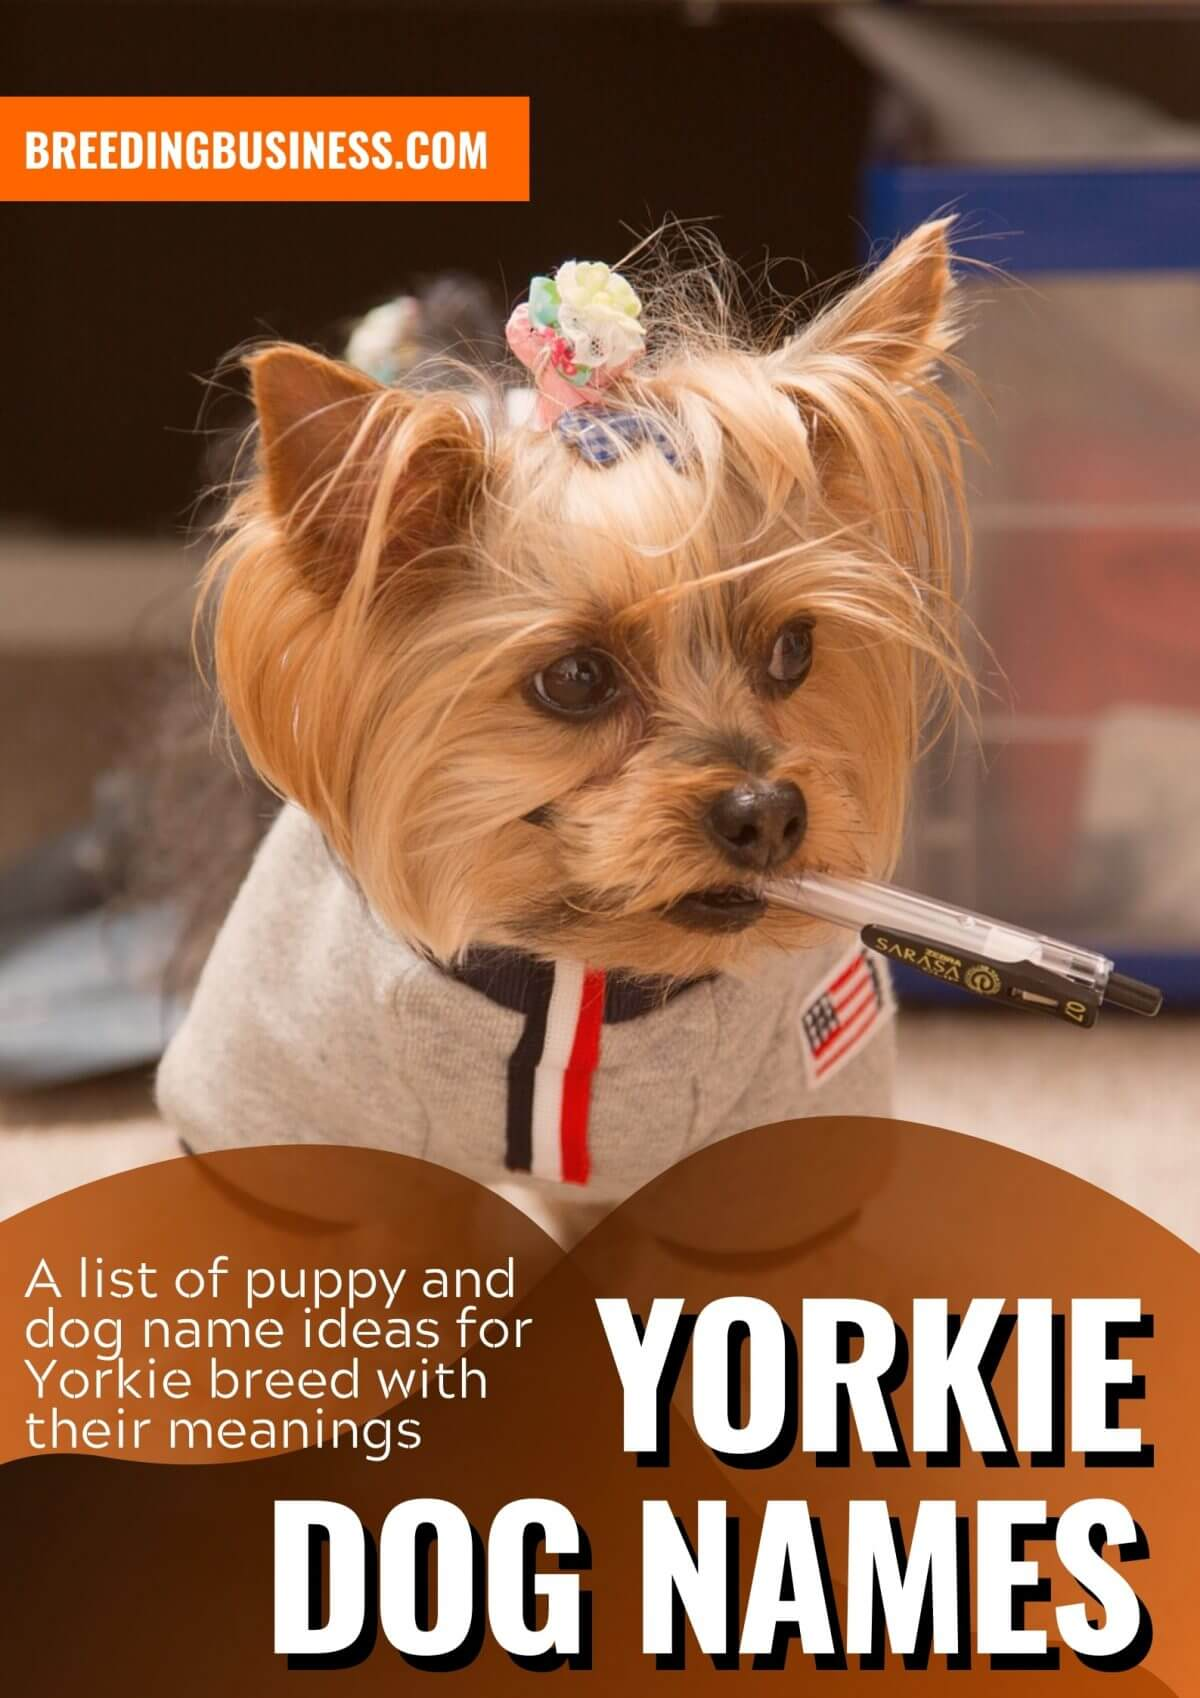 Yorkie Dog Names: 90+ Yorkshire Terrier Puppy Name Ideas!